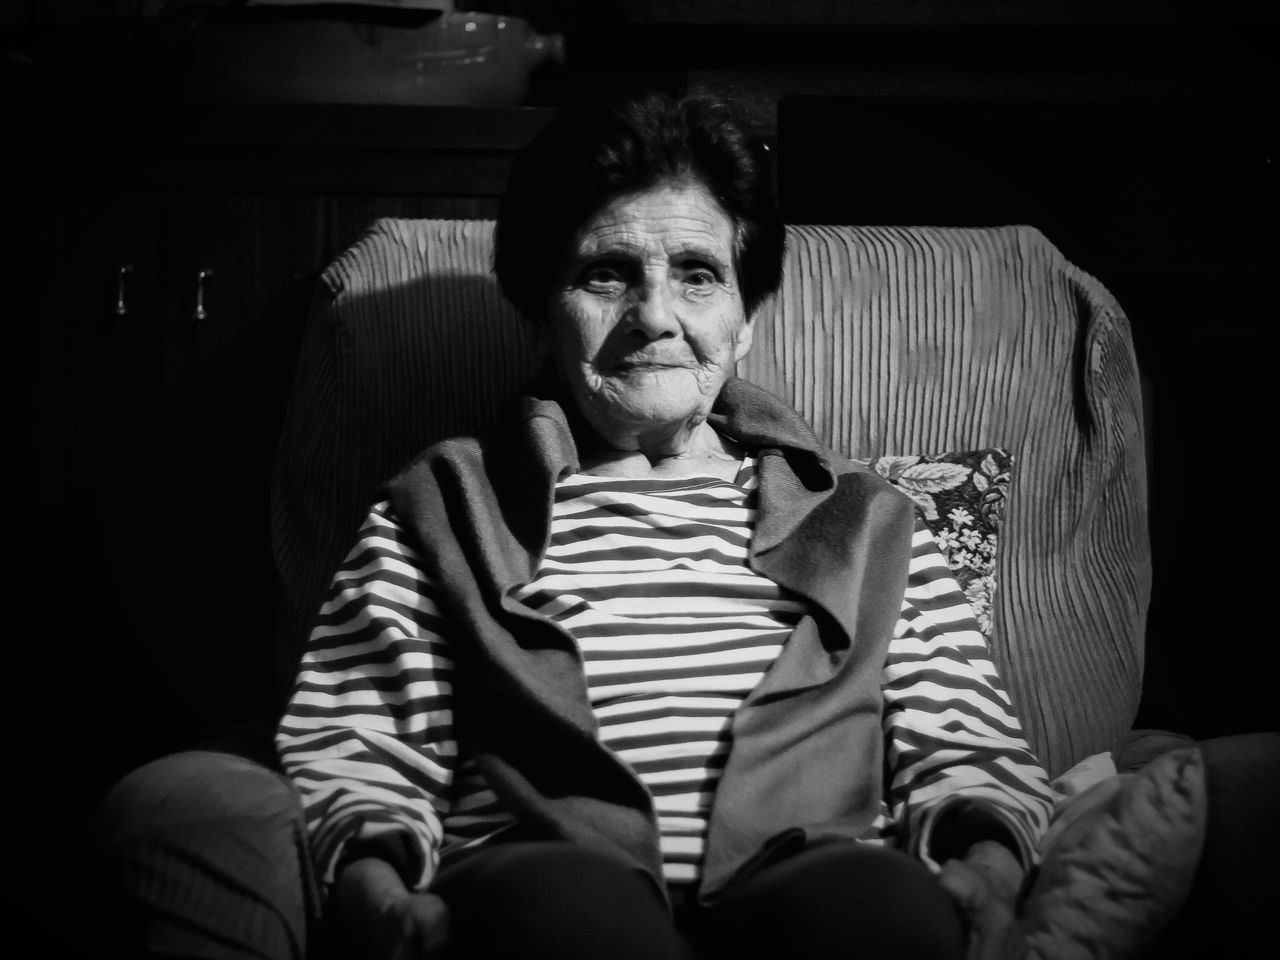 Sitting One Person Striped Front View Portrait Indoors  Looking At Camera Casual Clothing Adult People Lifestyles Real People Relaxation Black Background Smiling The Portraitist - 2017 EyeEm Awards Old Lady Woman Old Woman